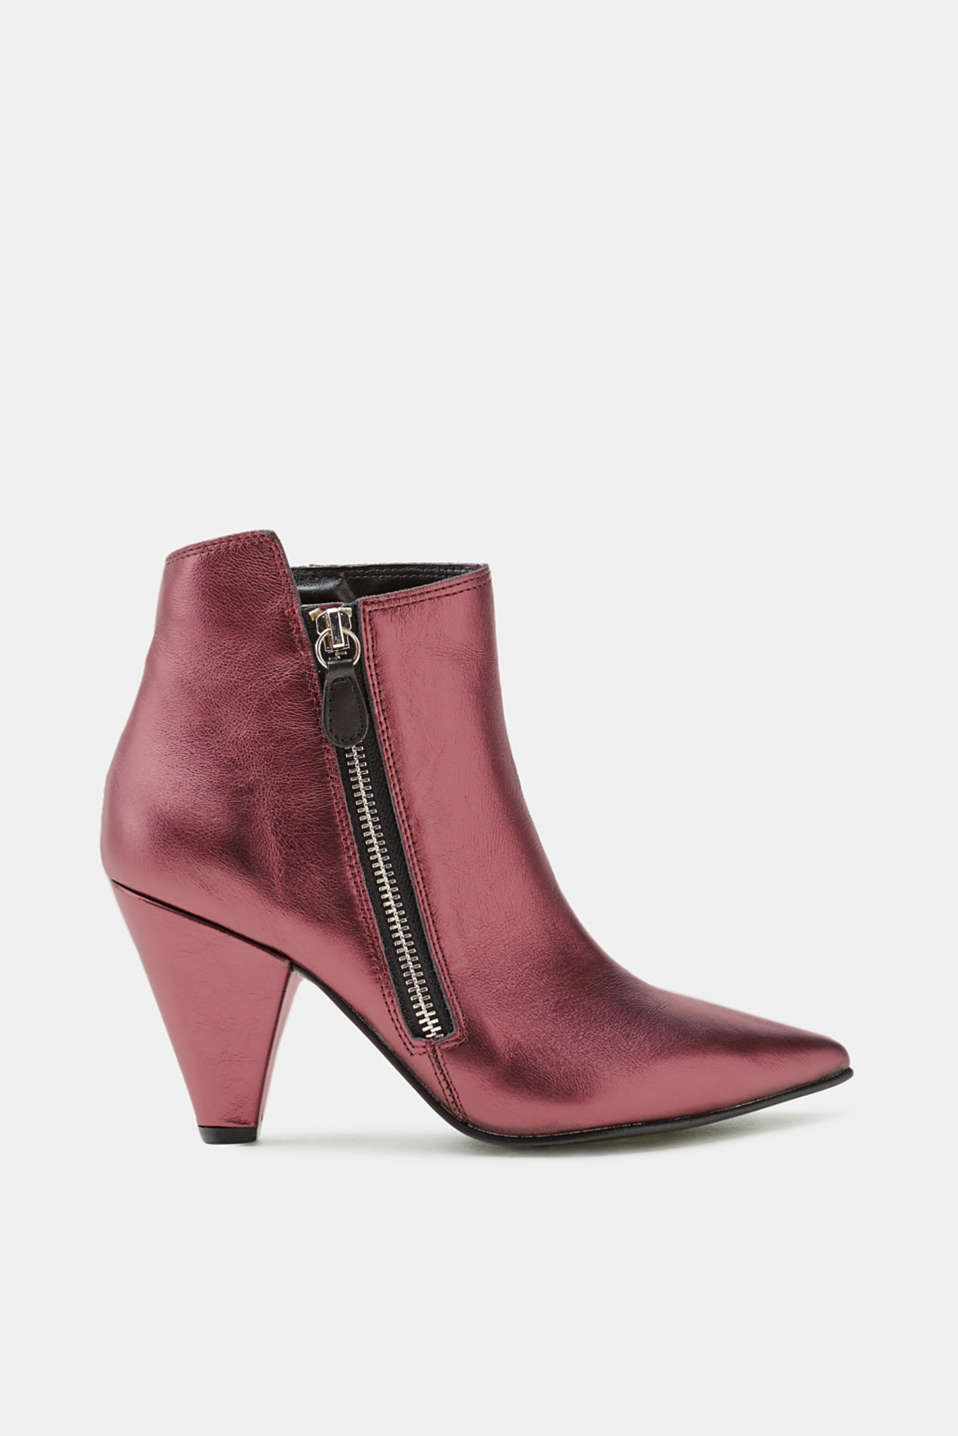 Esprit - Metallic leather ankle boots